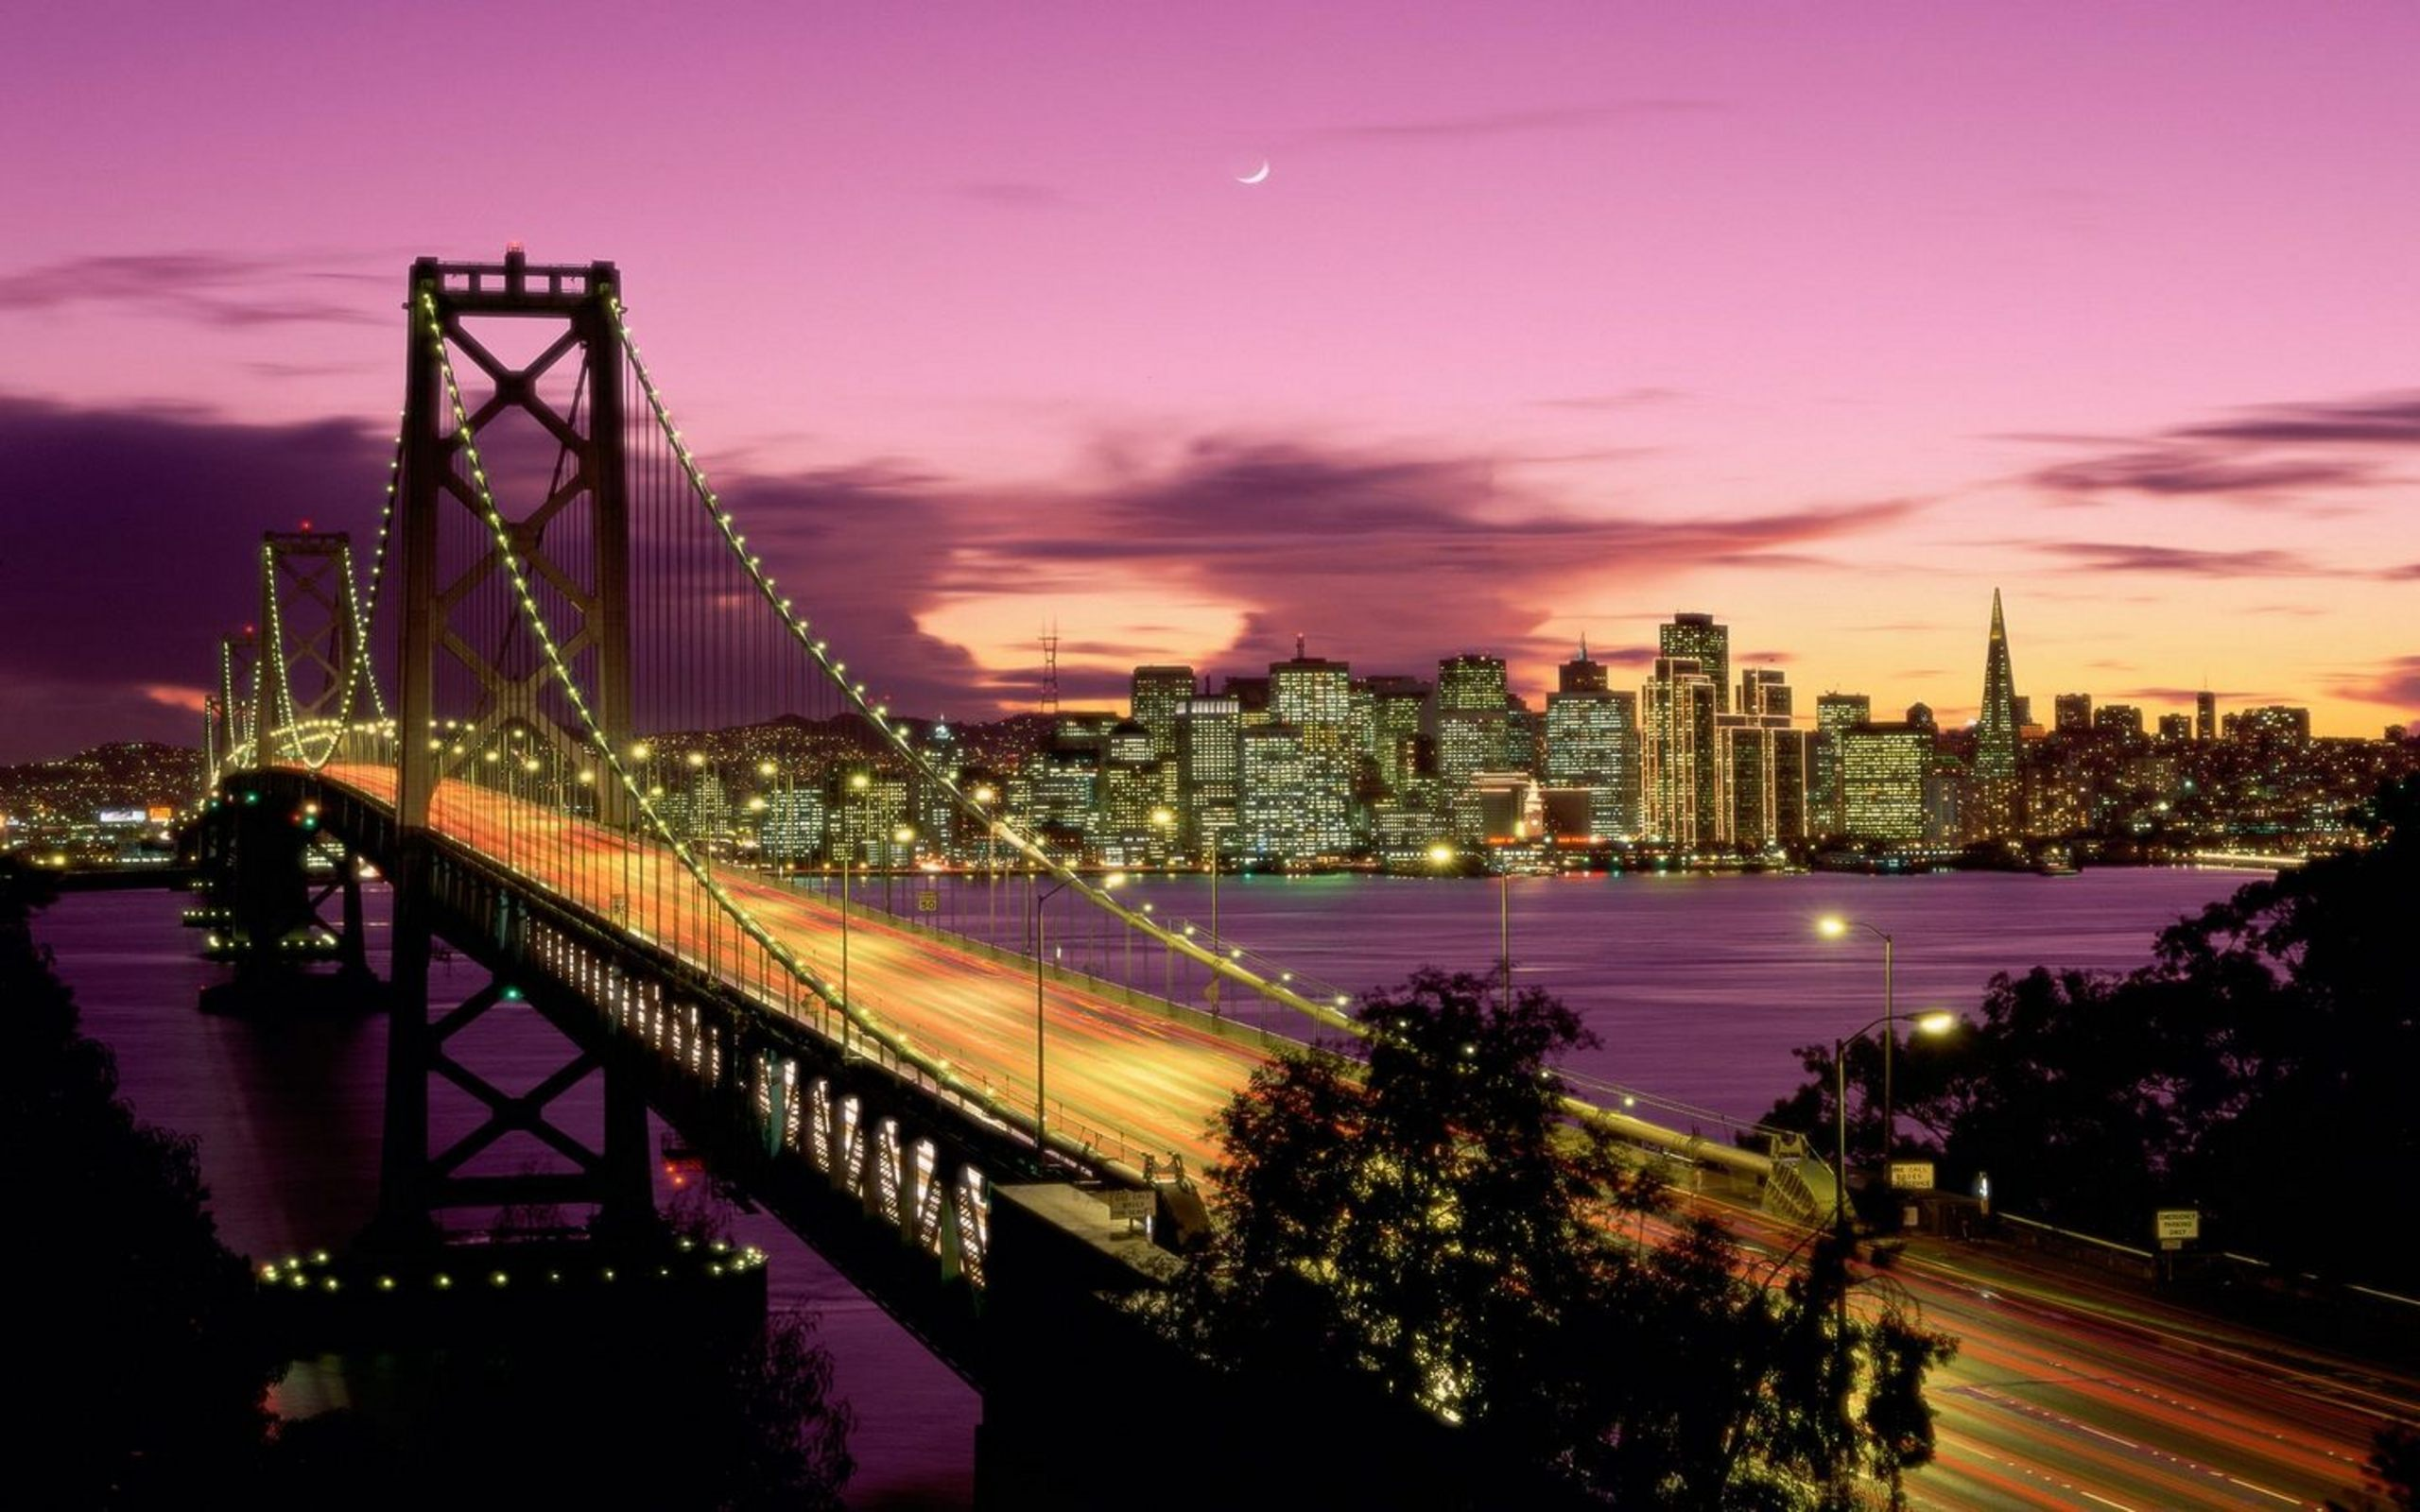 San Francisco Bridge California Wallpapers HD Wallpapers 2560x1600